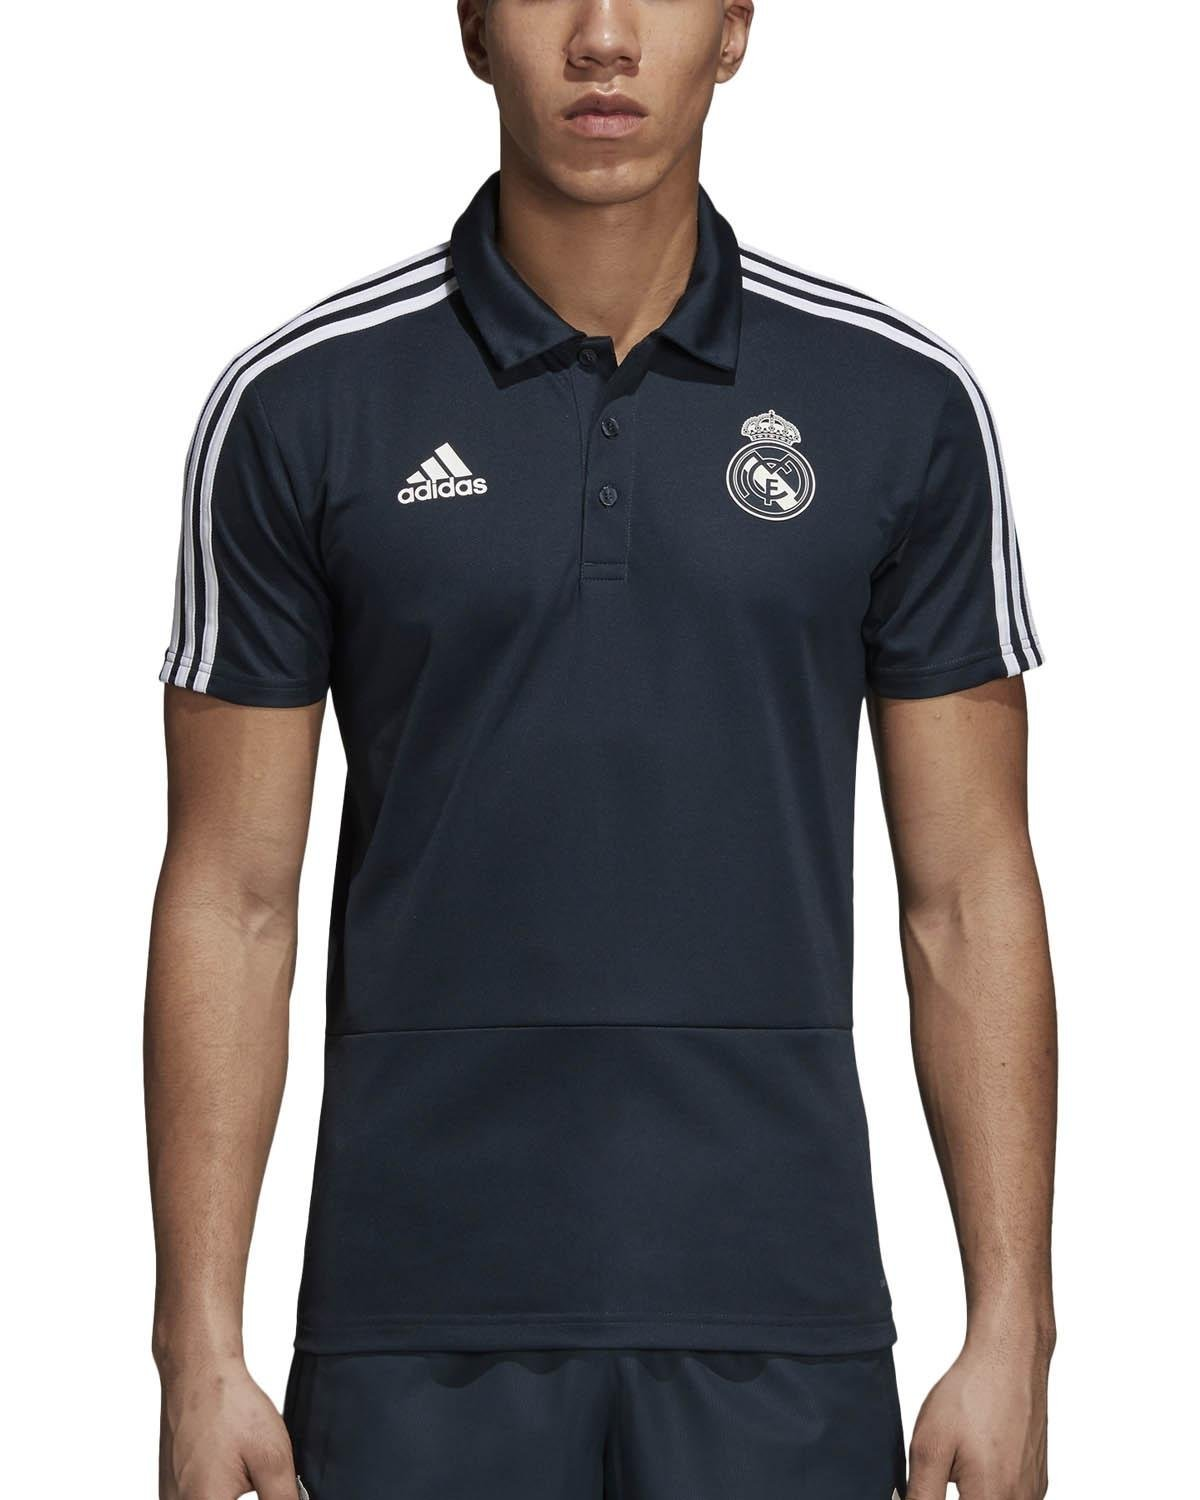 34b5d2f1 adidas 2018-2019 Real Madrid Polo Football Soccer T-Shirt Jersey (Dark Grey